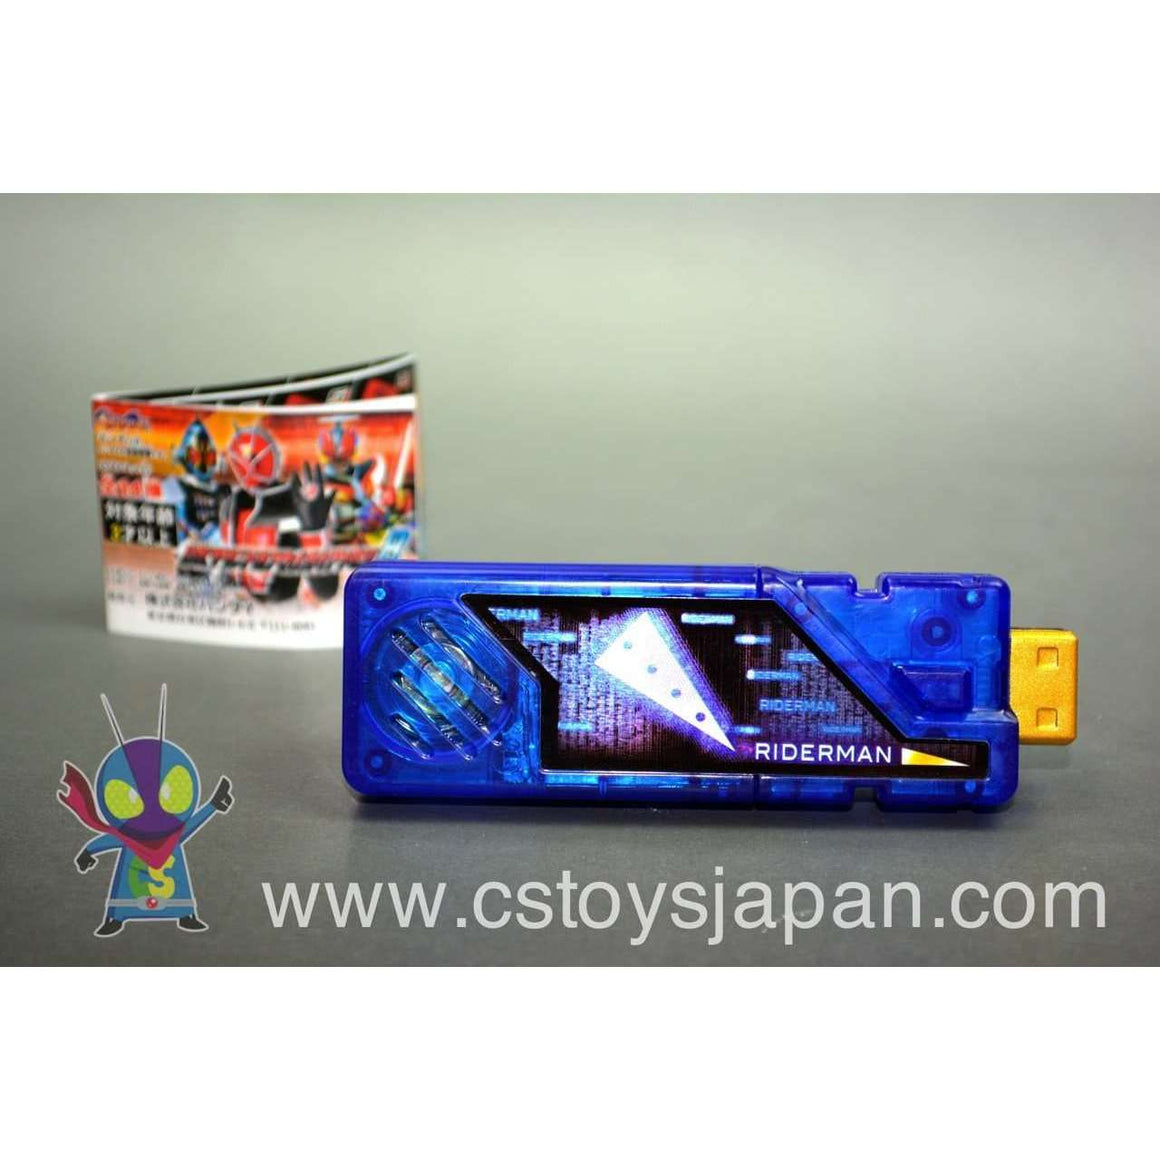 CSTOYS INTERNATIONAL:Kamen Rider W DX Sound Capsule Gaia Memory Vol.8 #10 Riderman